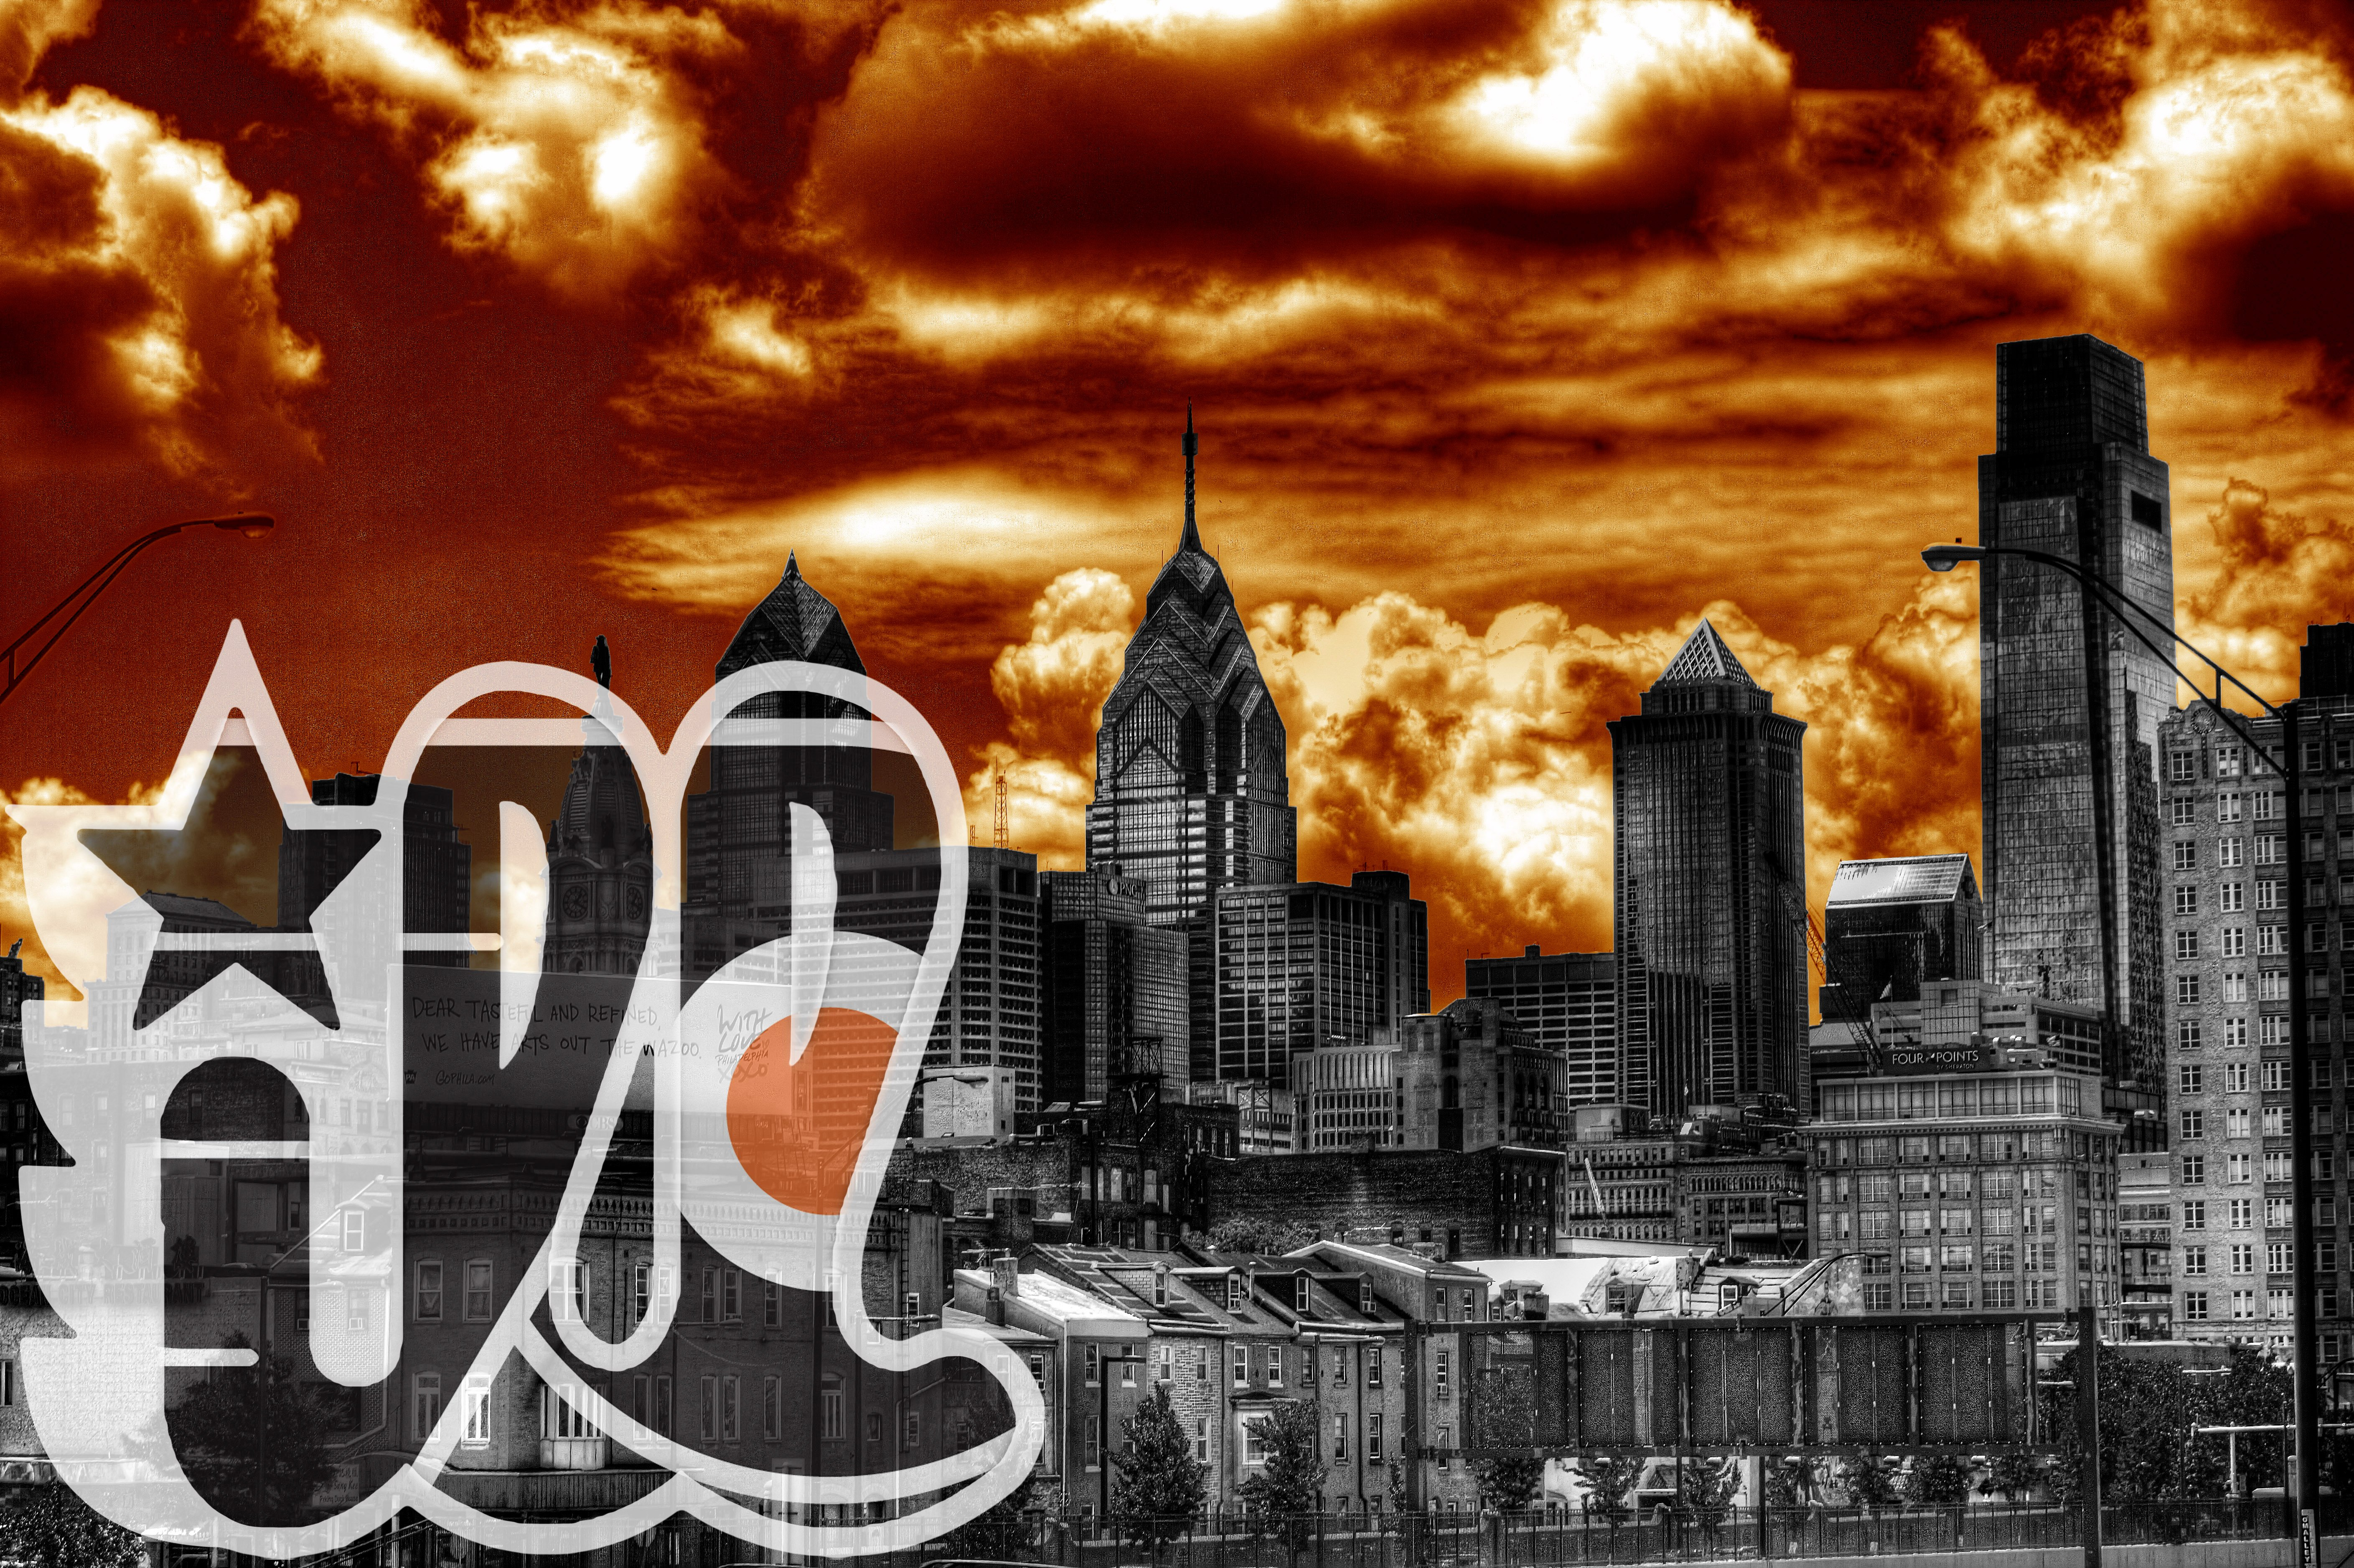 Philadelphia Flyers Desktop Wallpaper Collection Sports Geekery 5634x3753